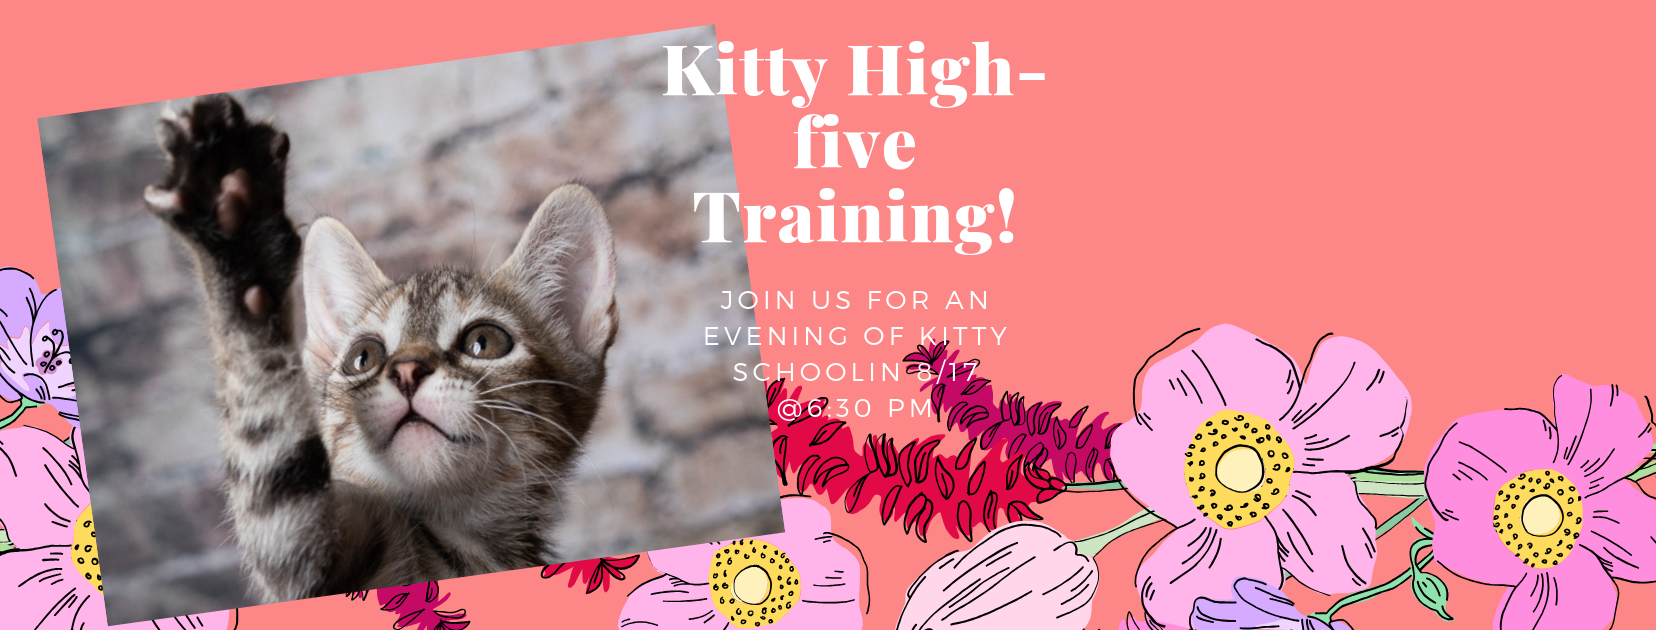 Kitty High-five Training!v2.png